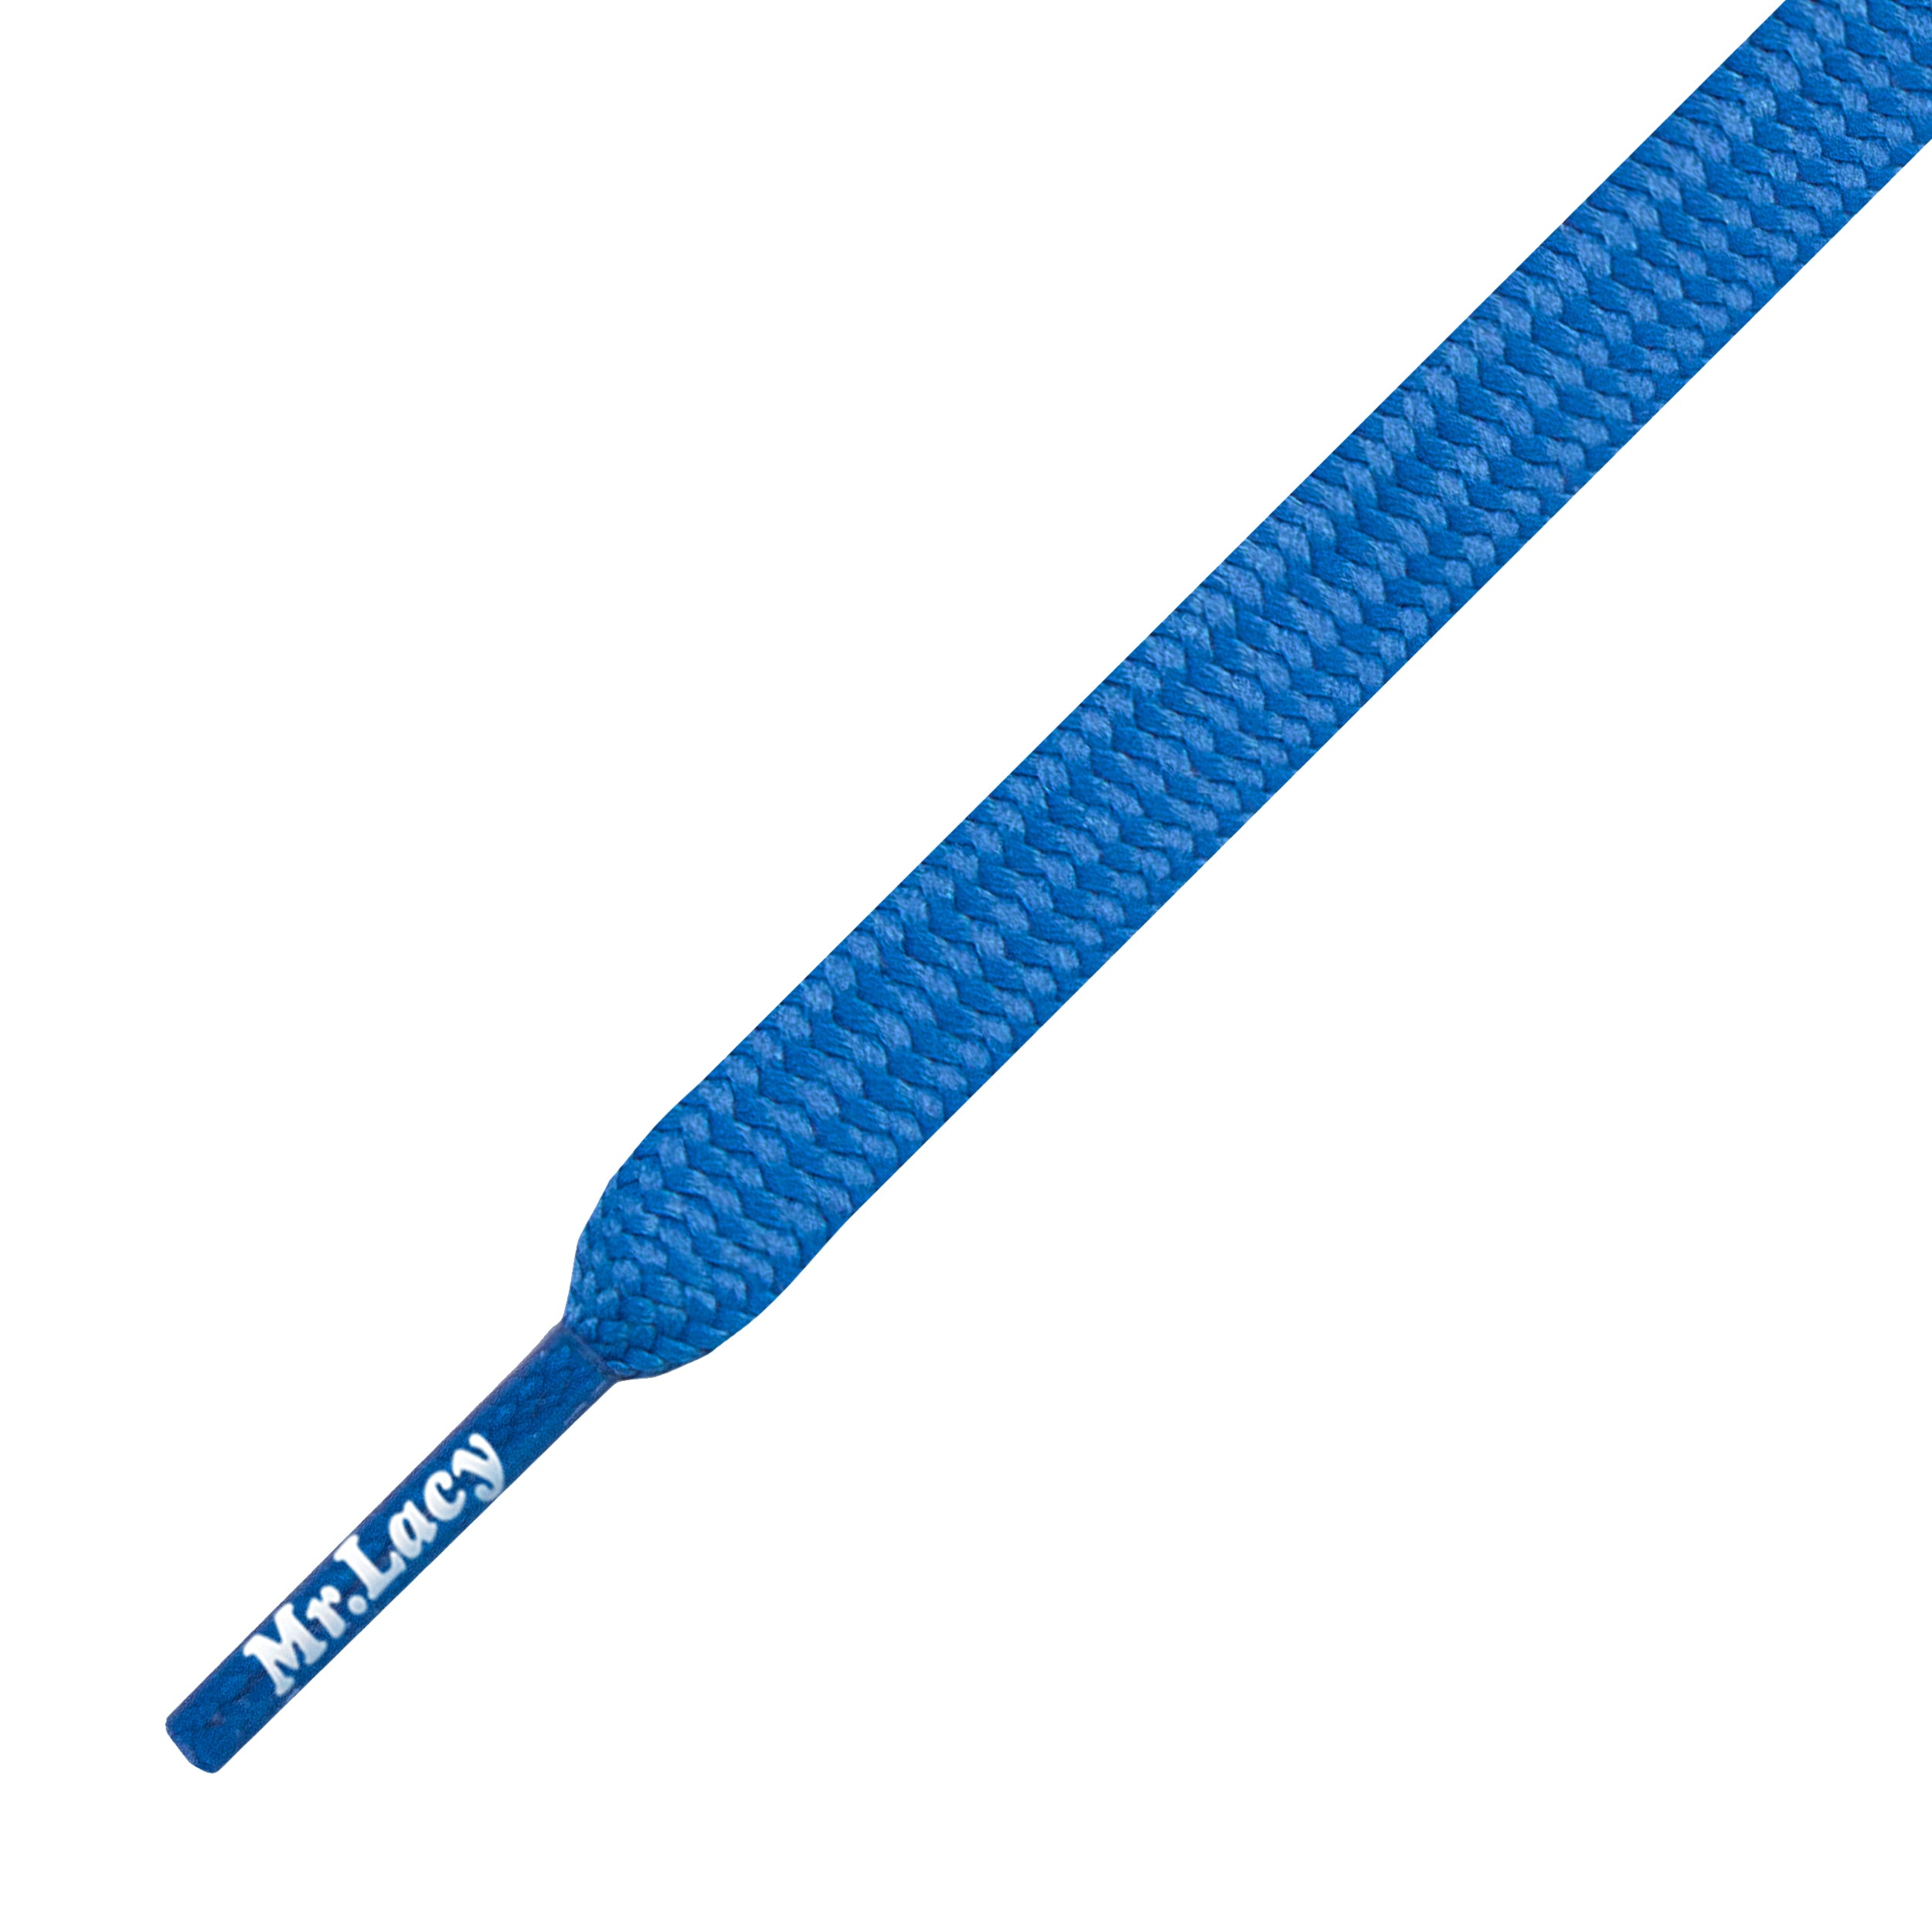 Mr Lacy Runnies Flat Royal Blue Shoelaces